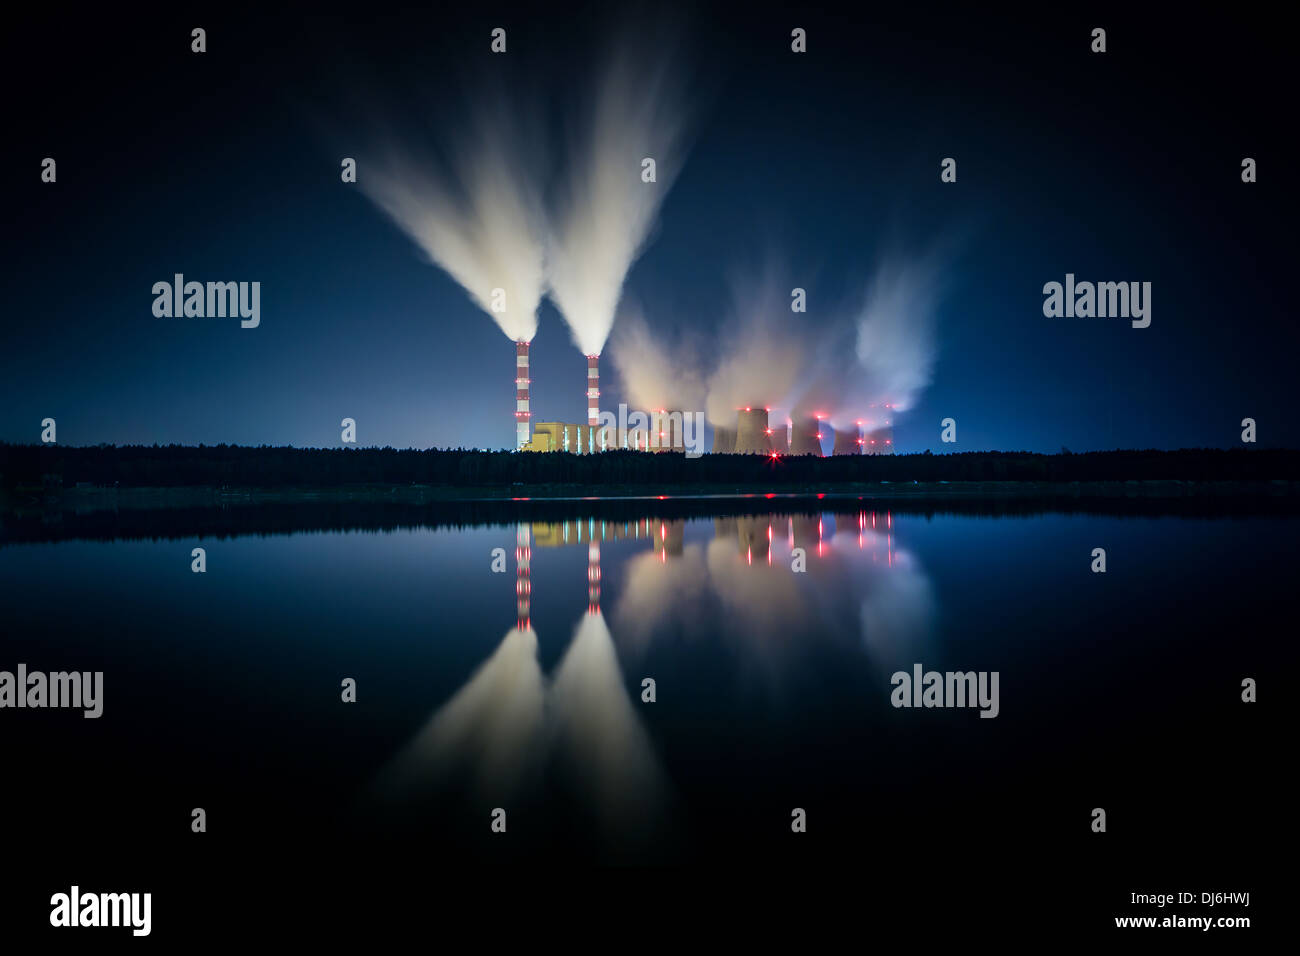 Coal power station et nuit - Belchatow en Pologne. Photo Stock